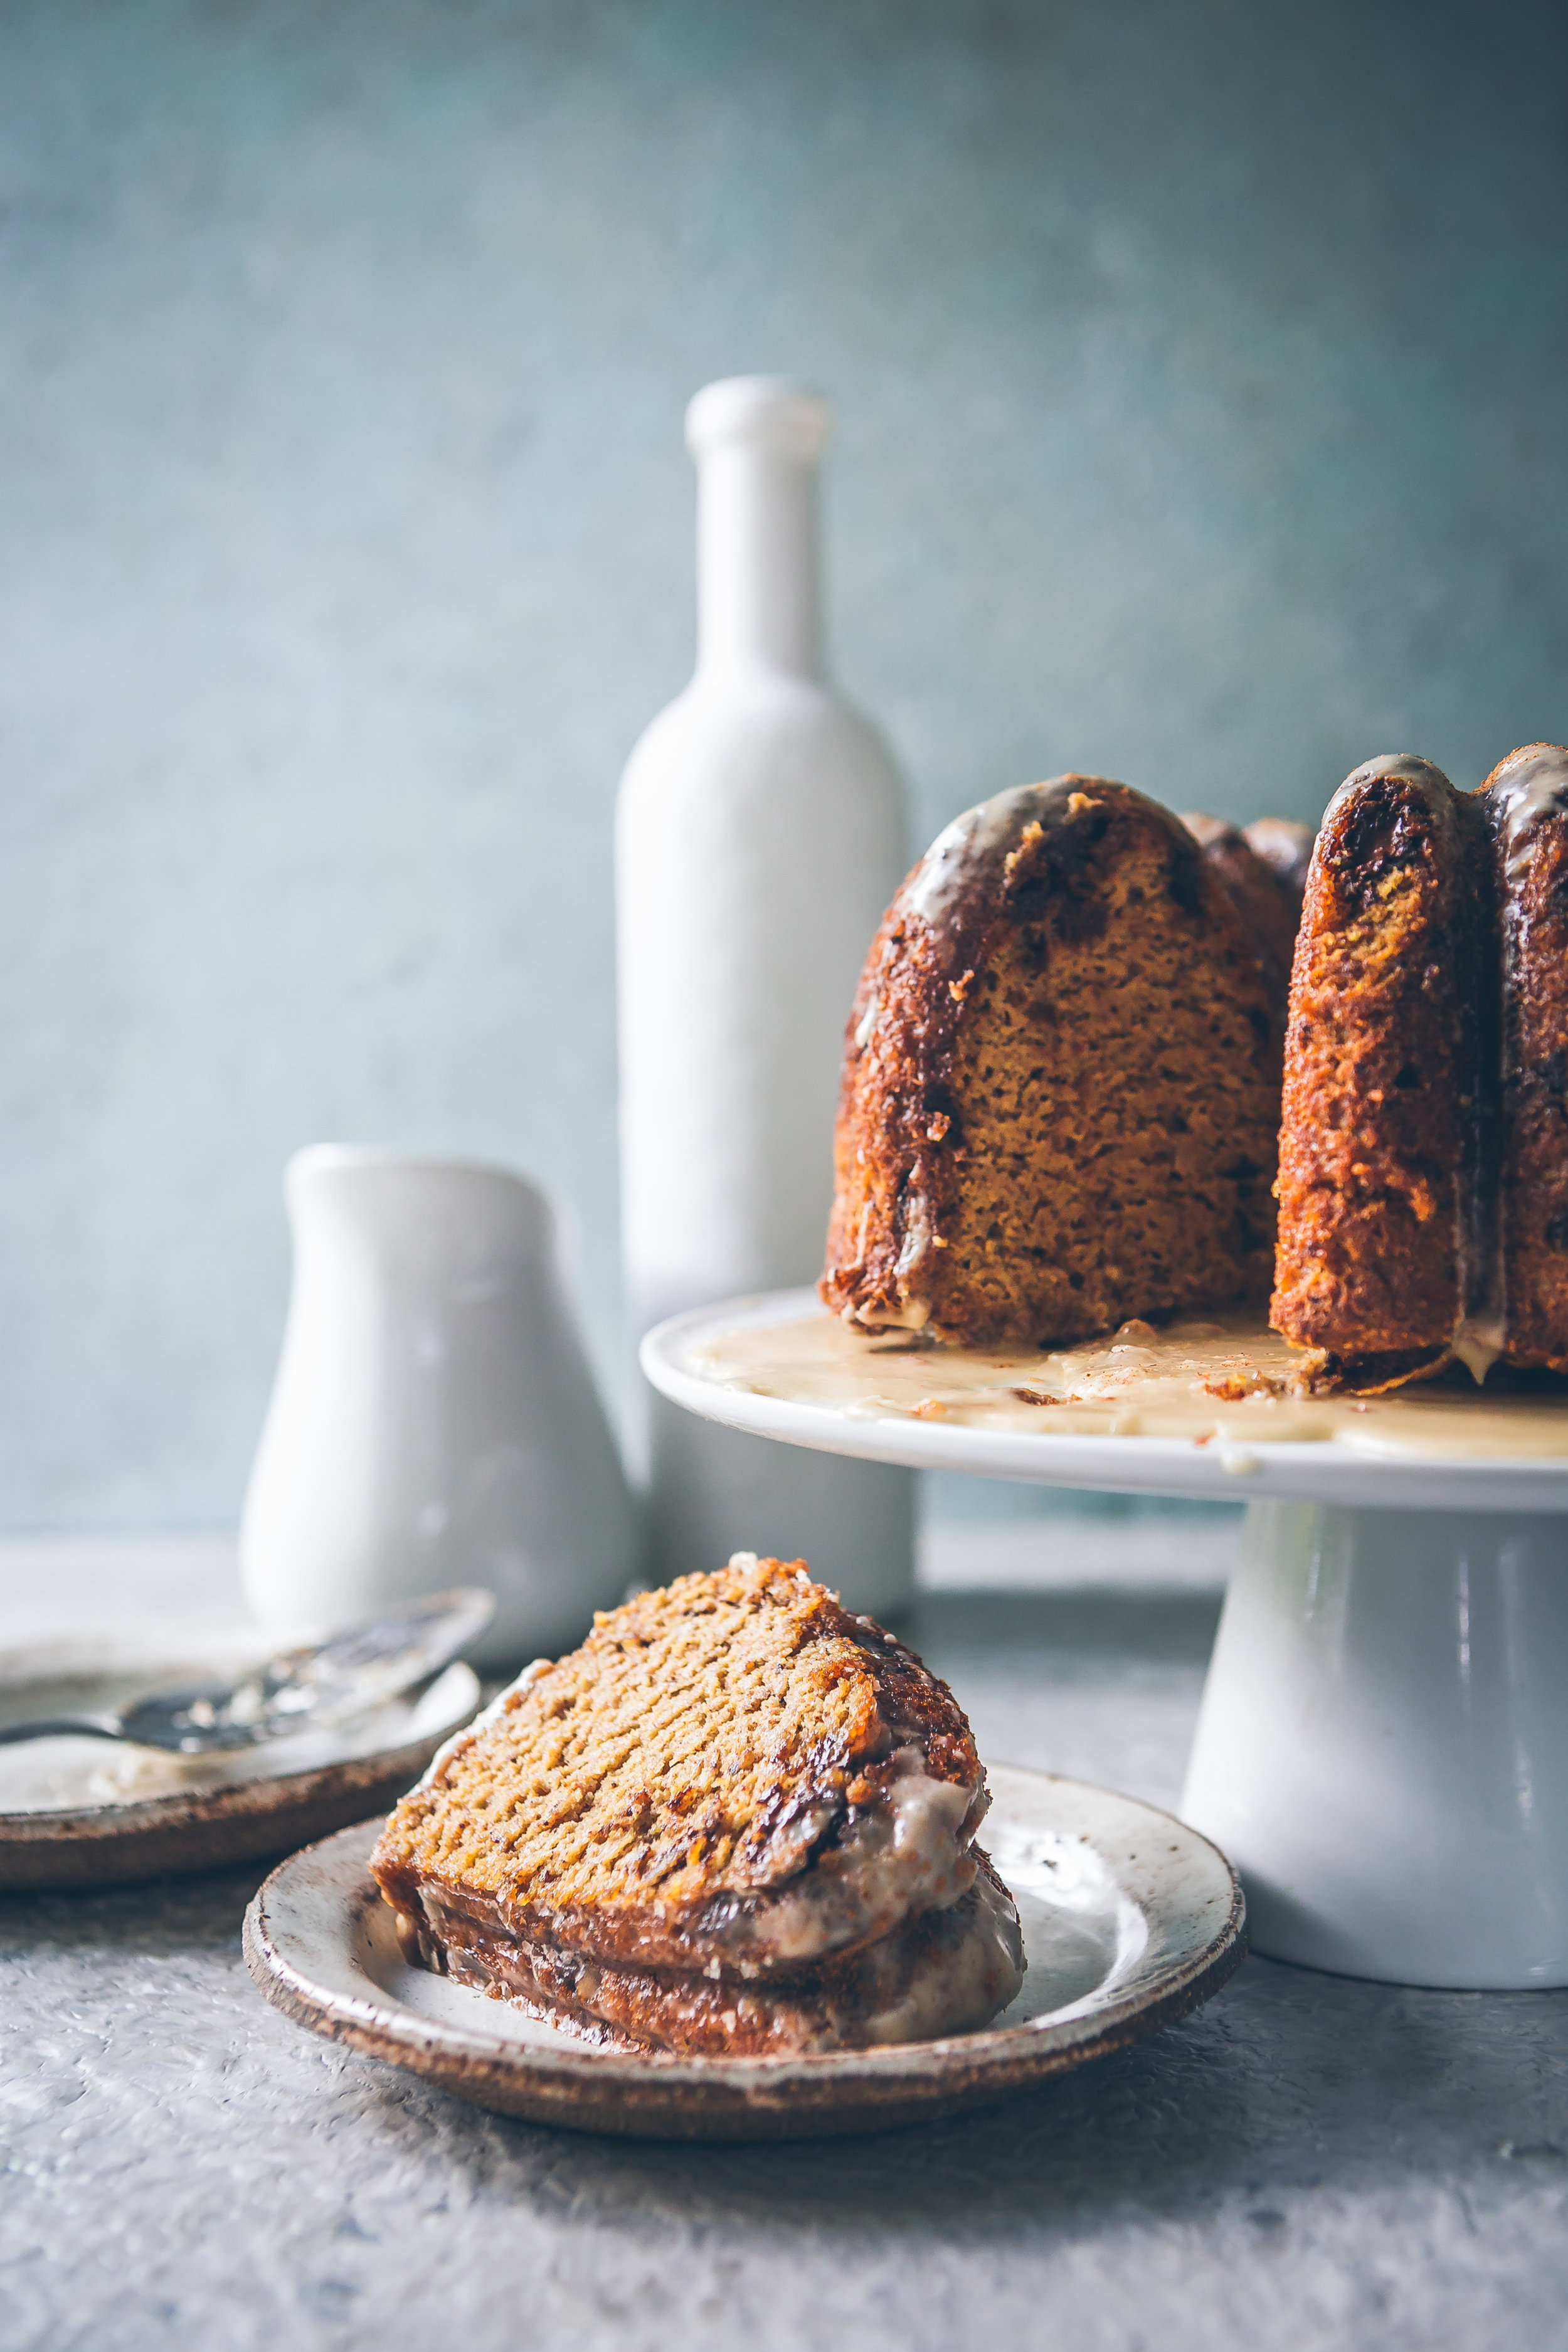 2017-09-05 G Free Pumpkin Almond Butter Chocolate Chip Bread with Espresso Icing 3.jpg